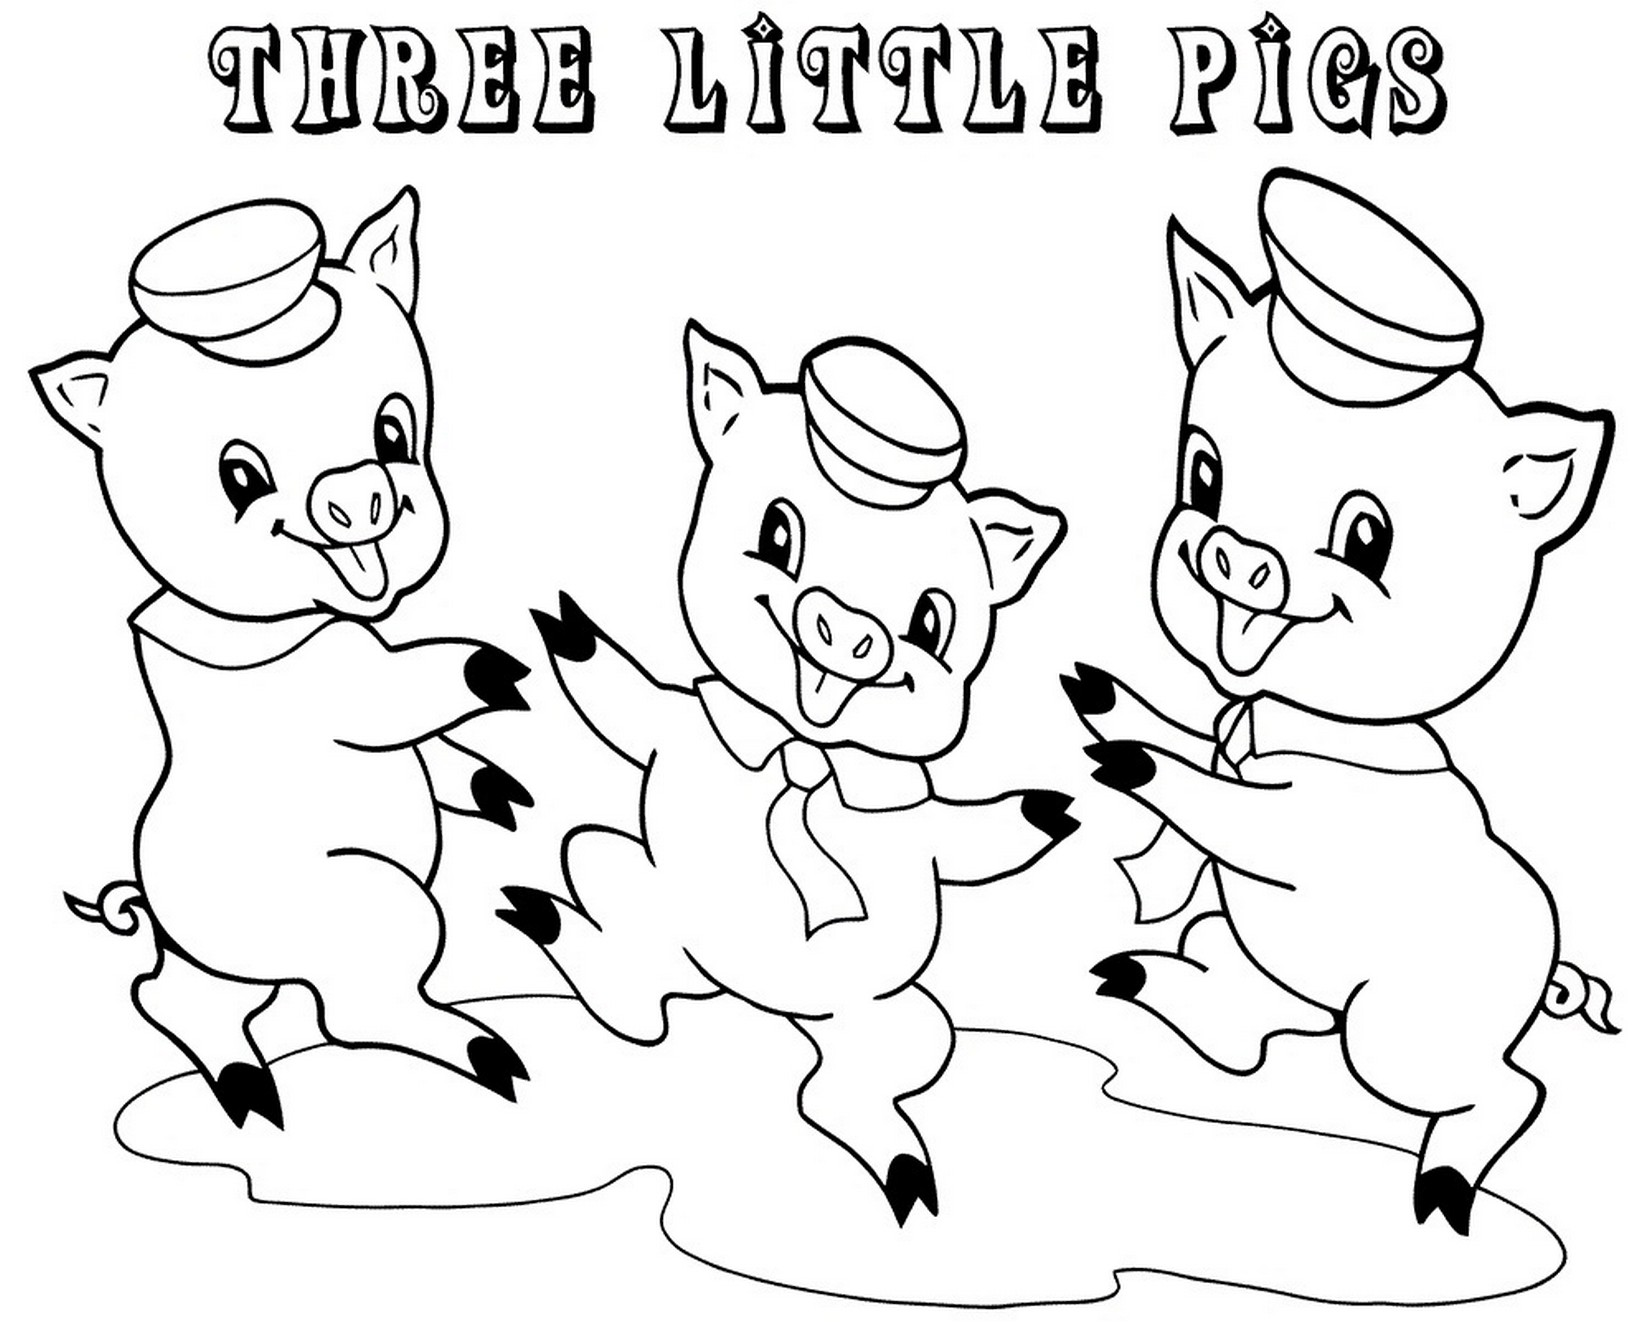 coloring page of pig pig coloring pages woo jr kids activities pig page of coloring